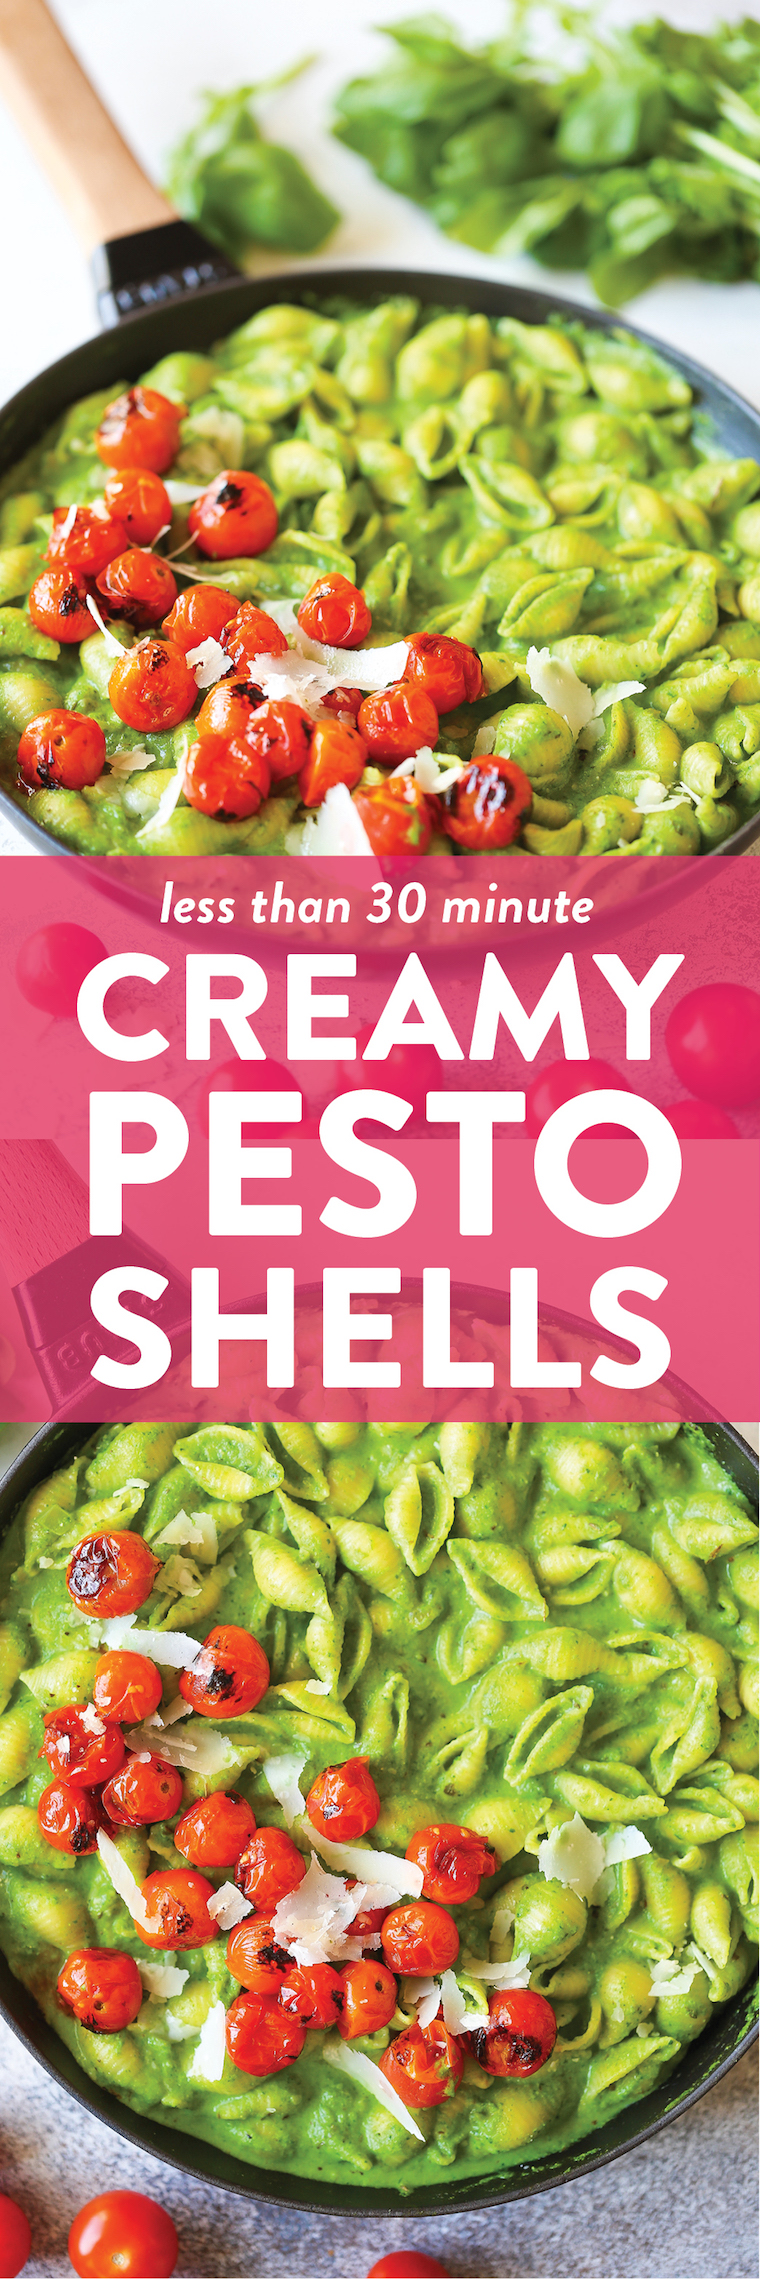 Creamy Pesto Shells - The most epic pesto cream sauce ever! It's fresh, vibrant, and amazingly creamy. Served with pasta for a quick family favorite meal!